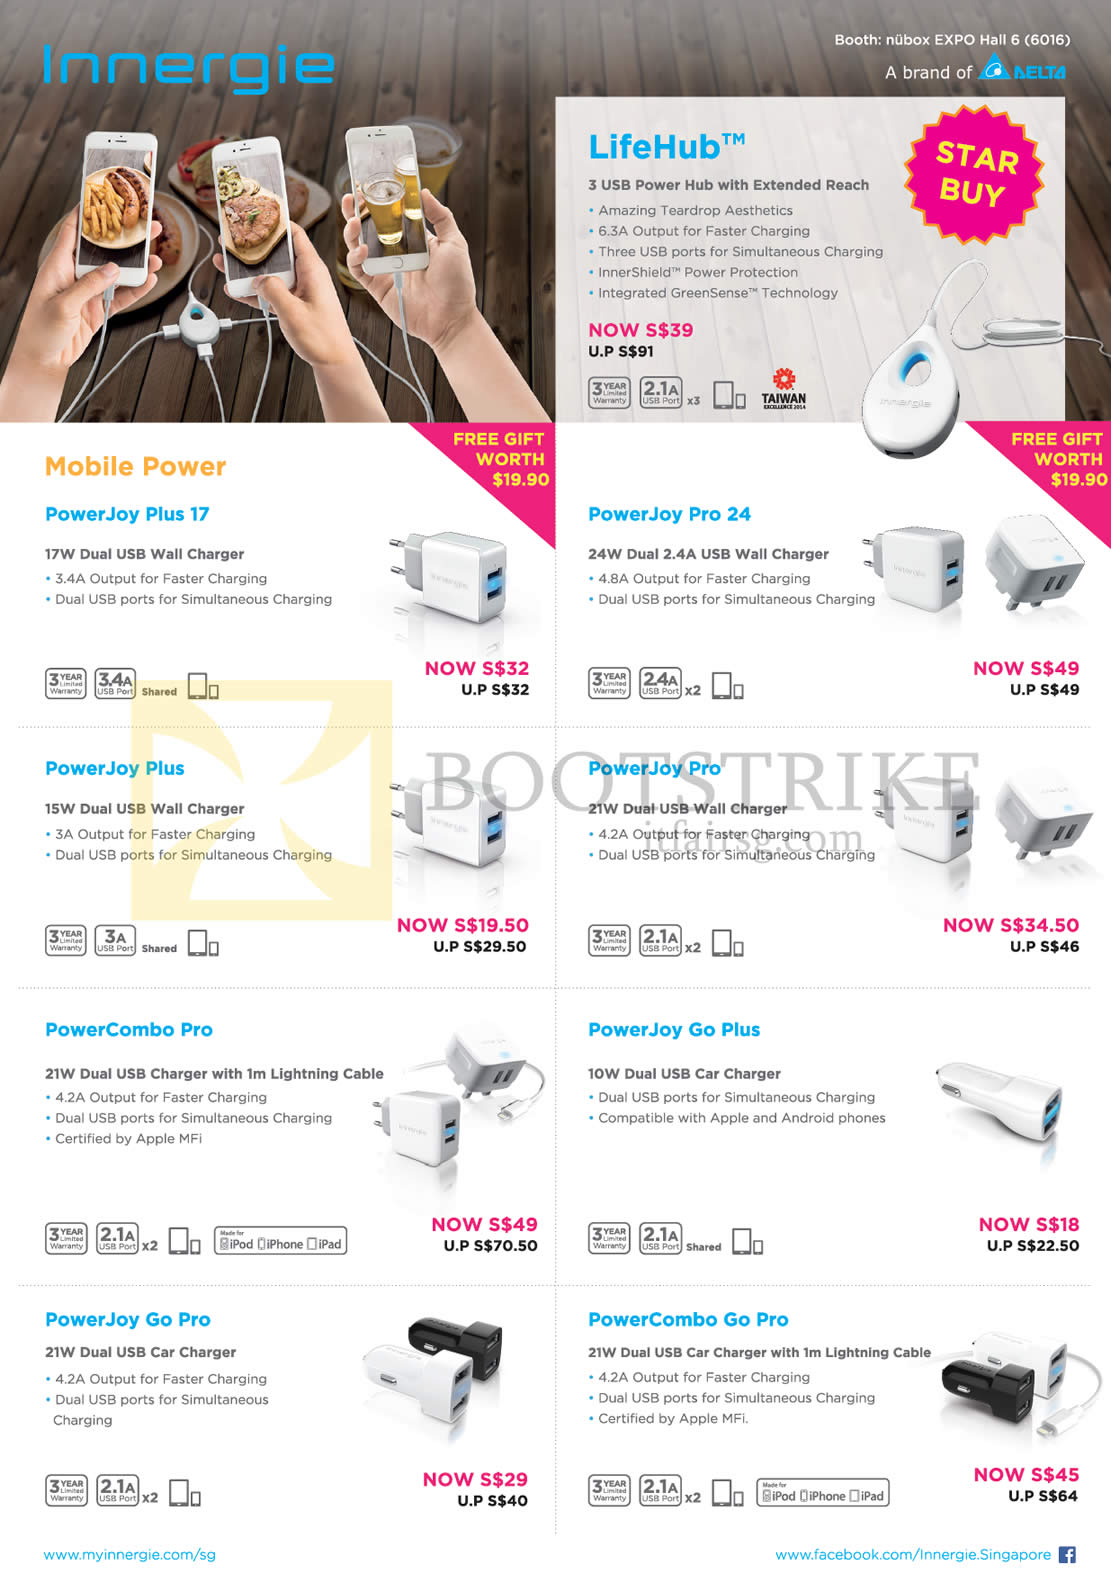 PC SHOW 2016 price list image brochure of Nubox Innergie USB Power Hub LifeHub, Power Joy Plus 17, Pro 24, Plus, Pro, PowerCombo Pro, PowerJoy Go Plus, Go Pro